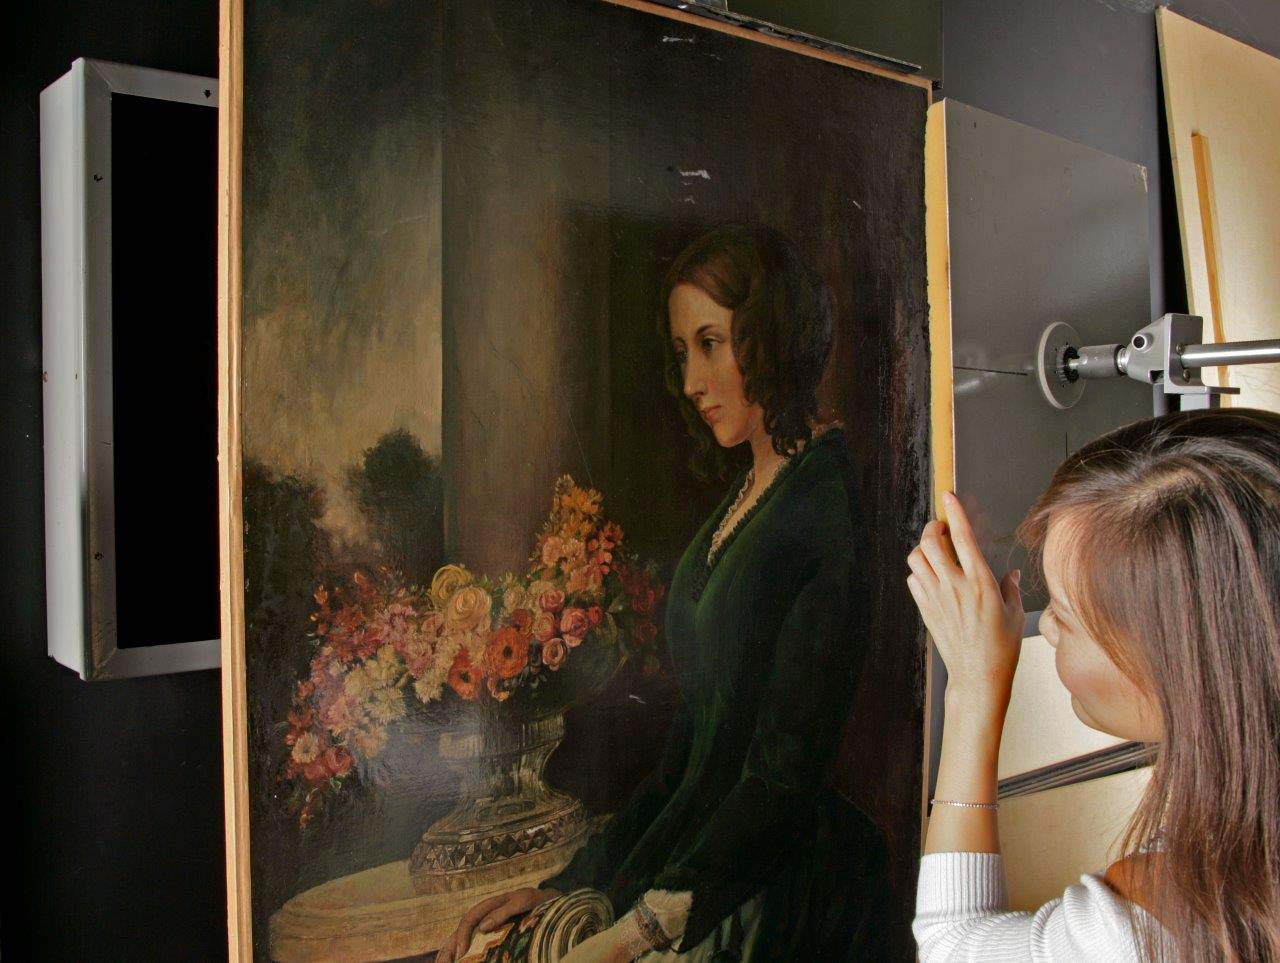 a photo of a womna using a kind of X-ray machine next to portrait of woman in a green dress